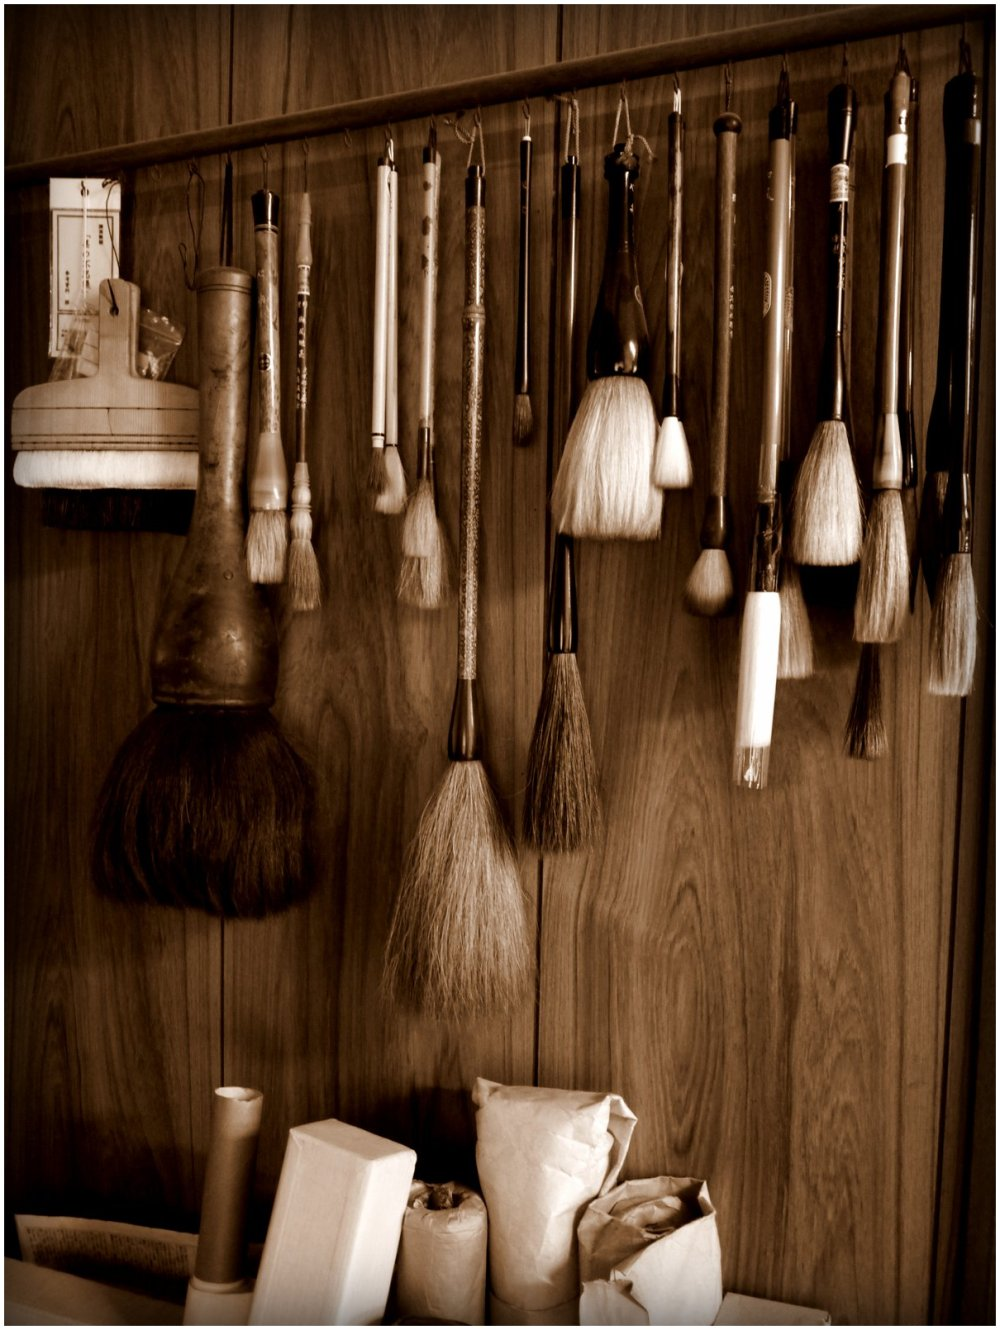 Brushes in a calligraphy studio